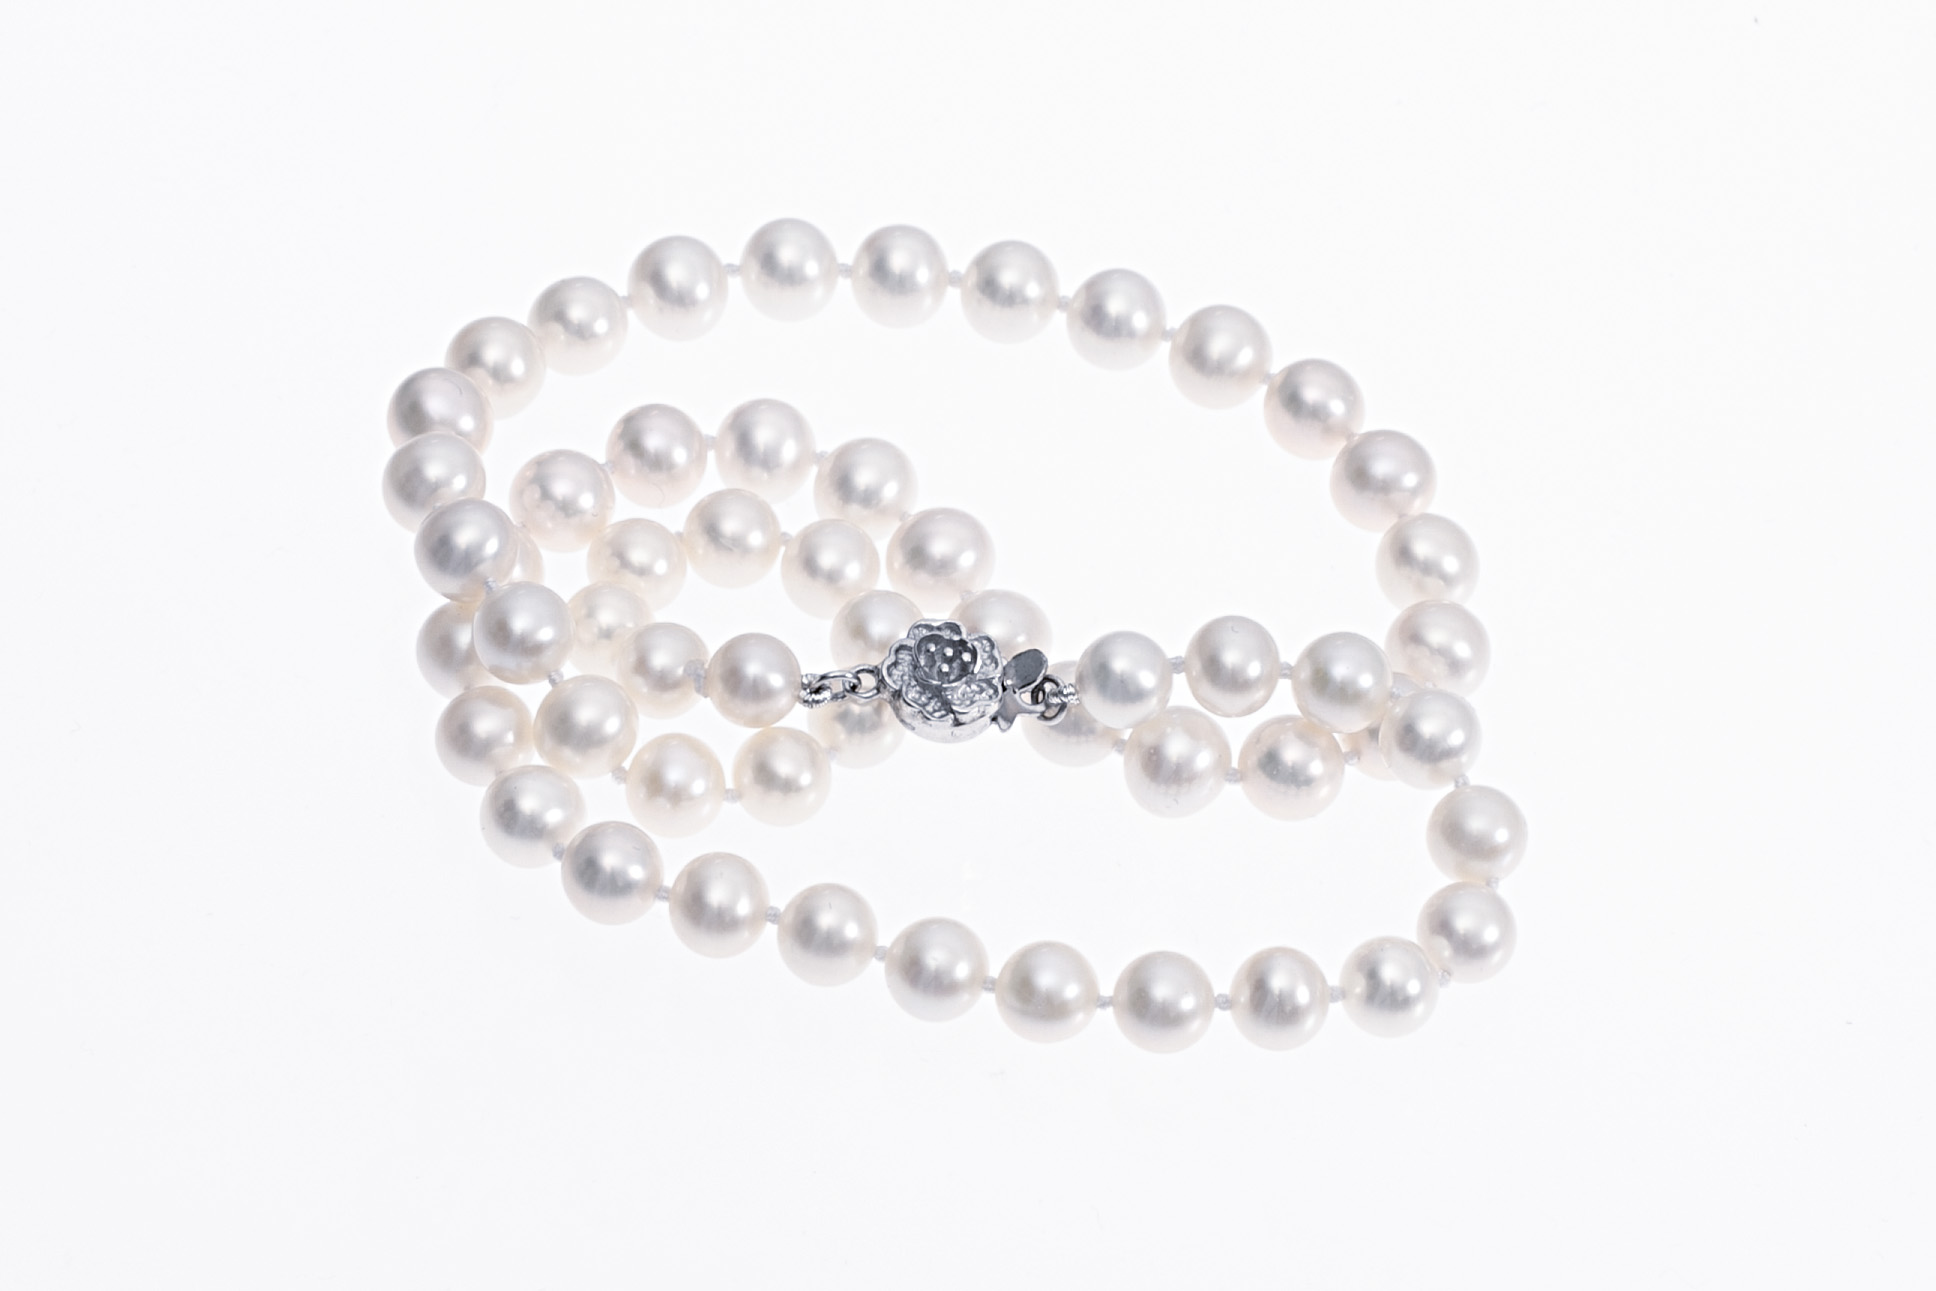 a437a27d6 Top-quality Freshwater cultured pearl necklace with silver clasp 7-8mm -  Julia's Pearls